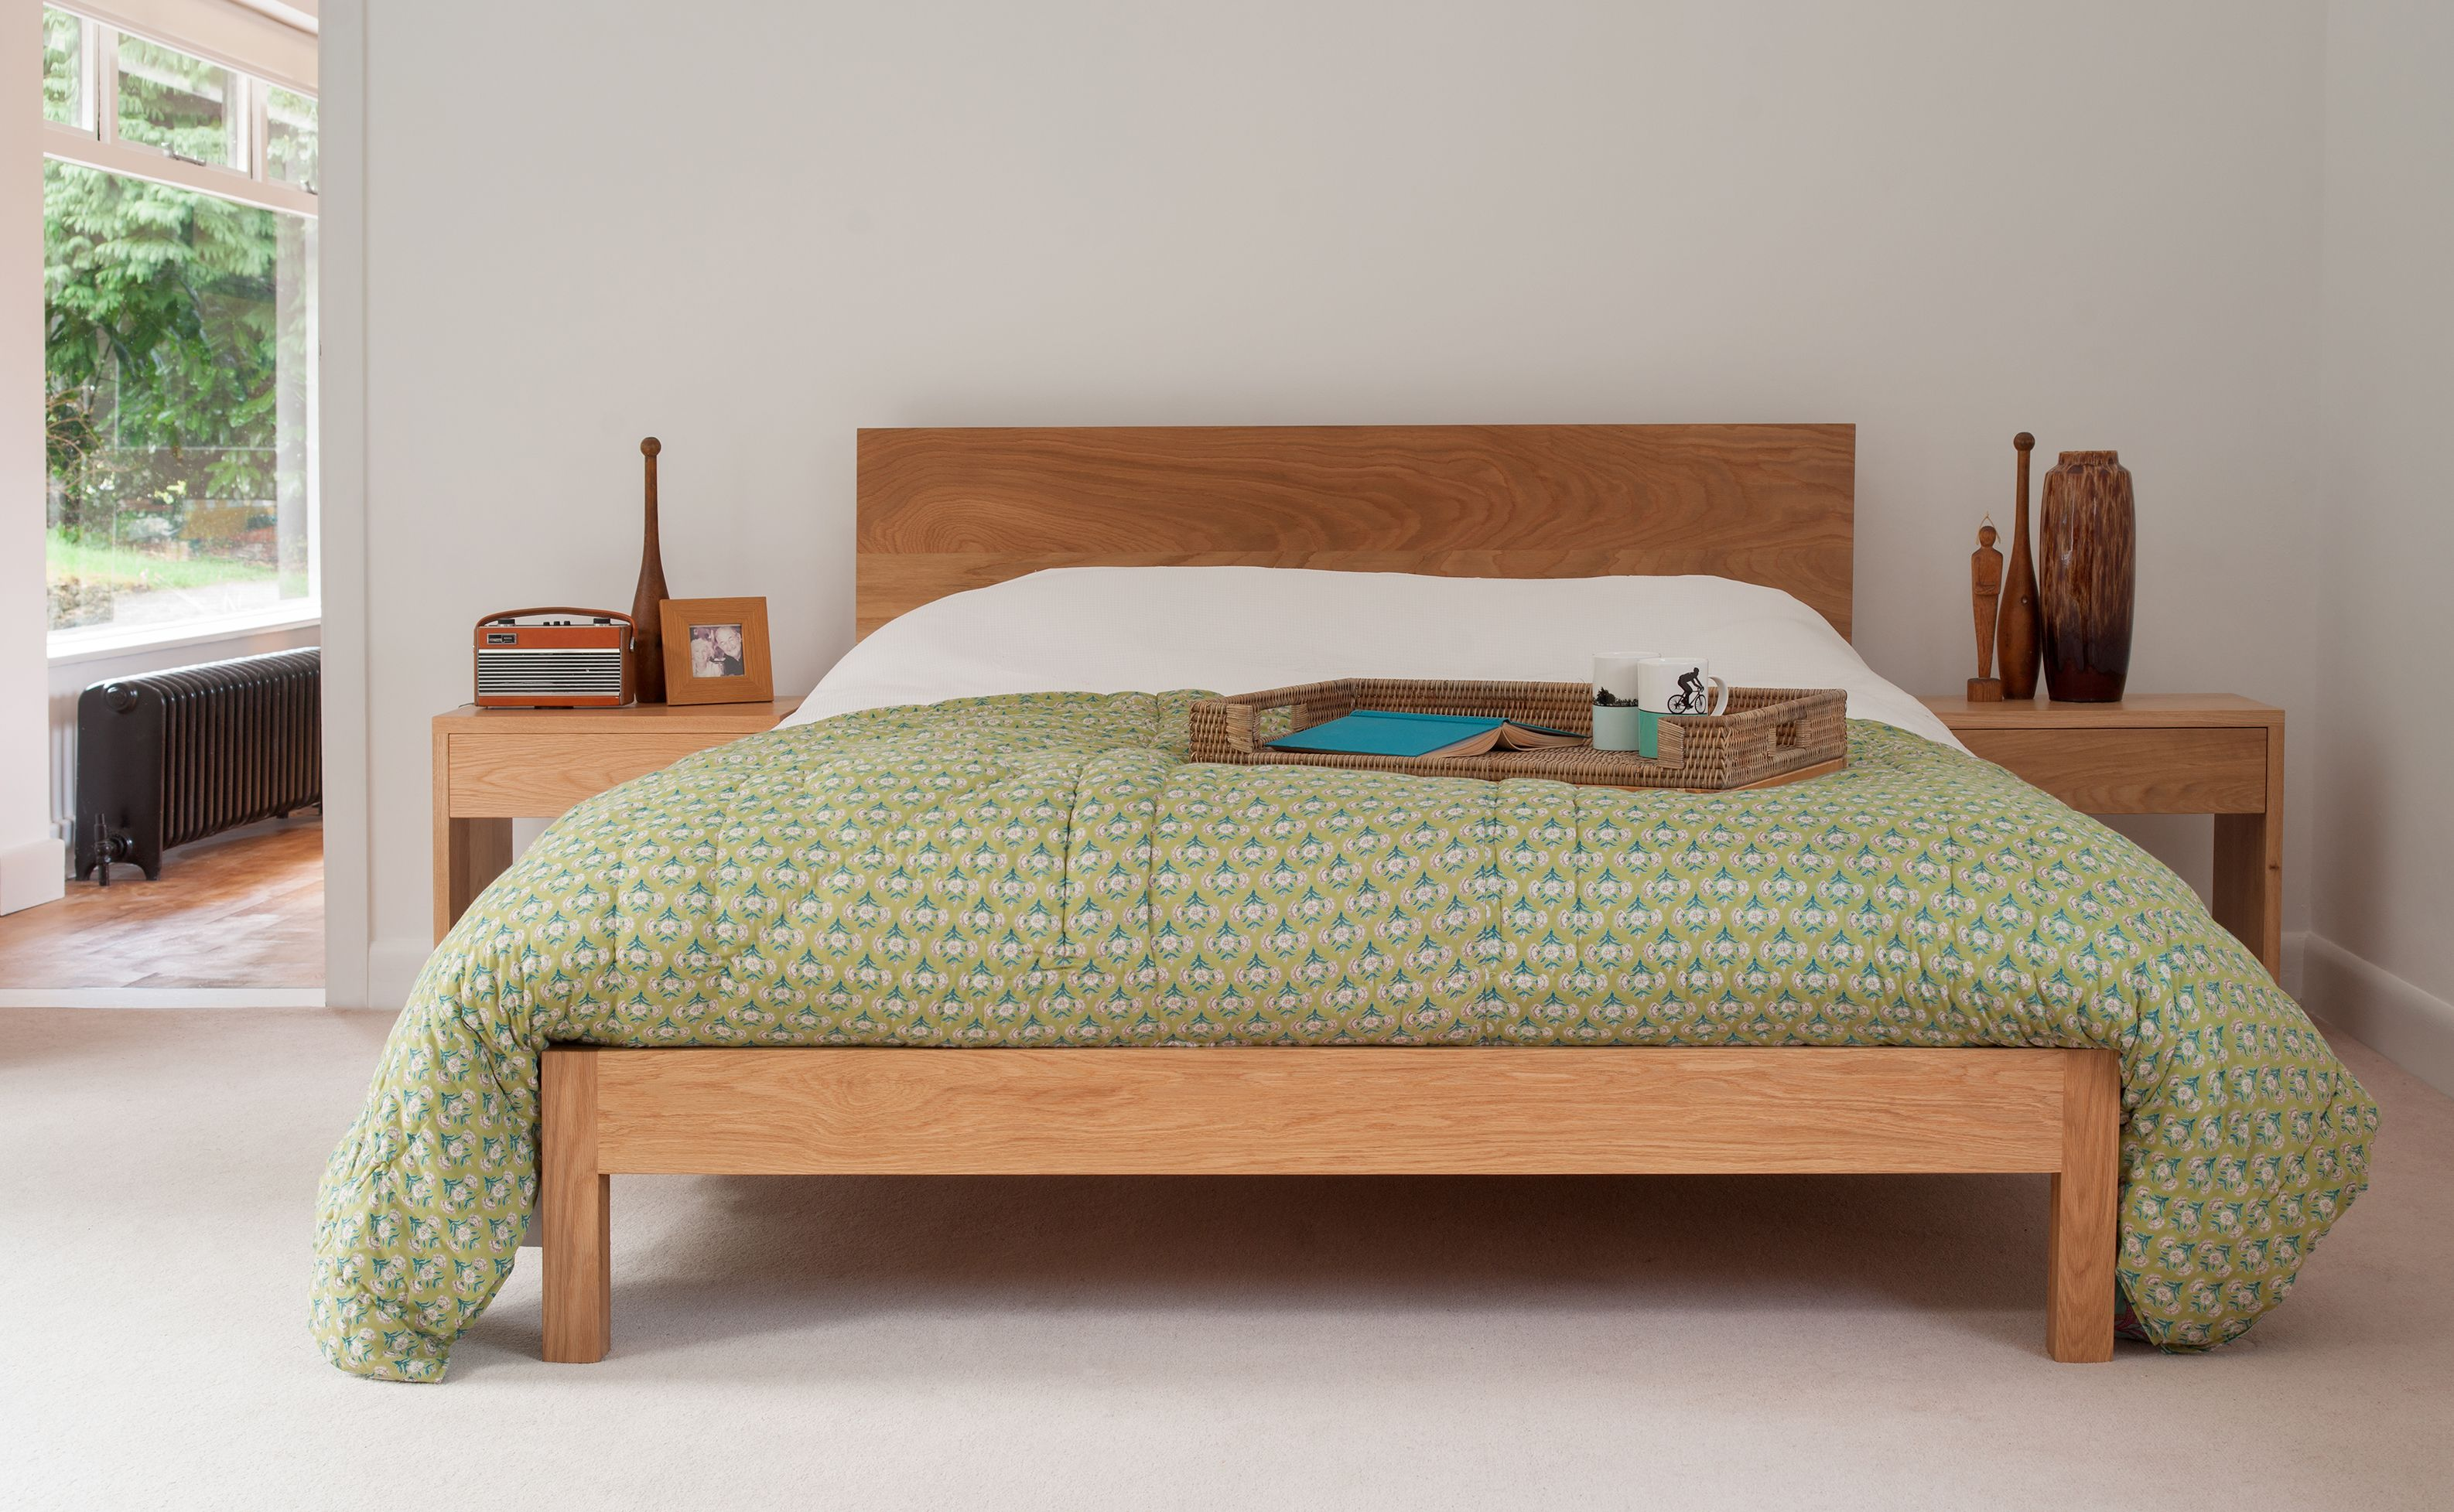 Solid Walnut Bedroom Furniture The Malabar Is A Contemporary Wooden Bed Available In A Range Of